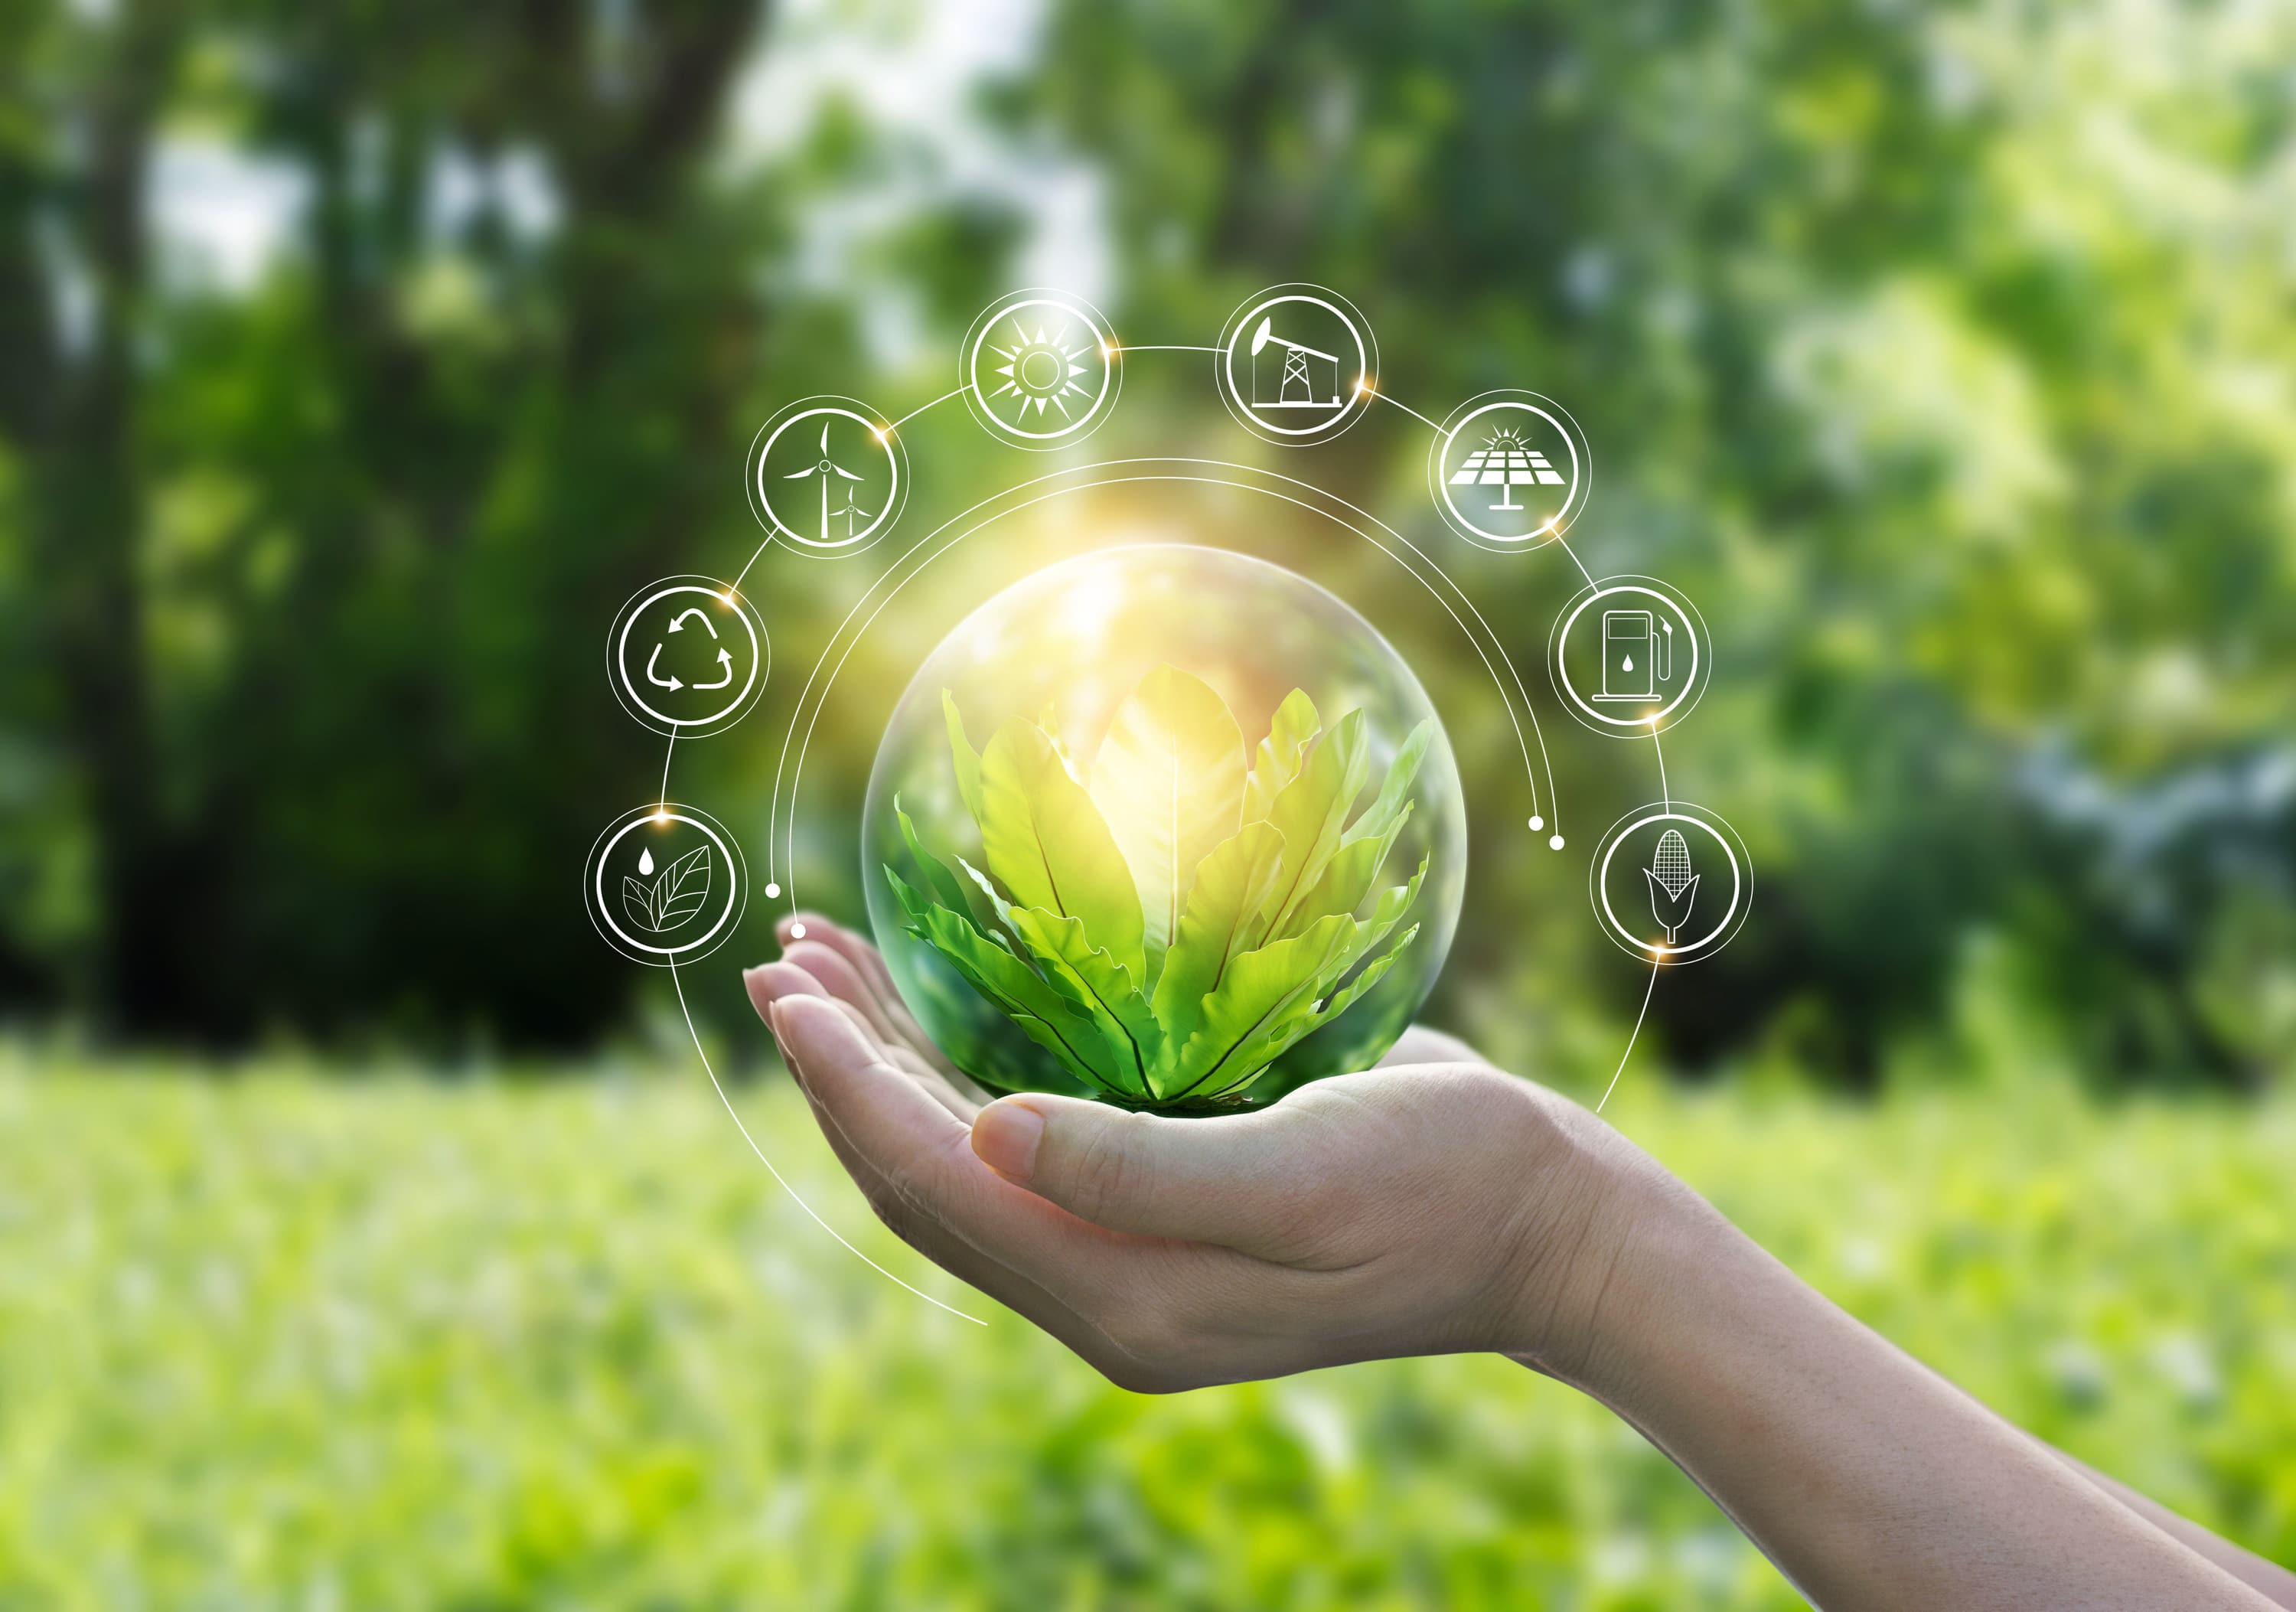 Sustainable development balances economic and environmental issues, and is key to humanity's future.